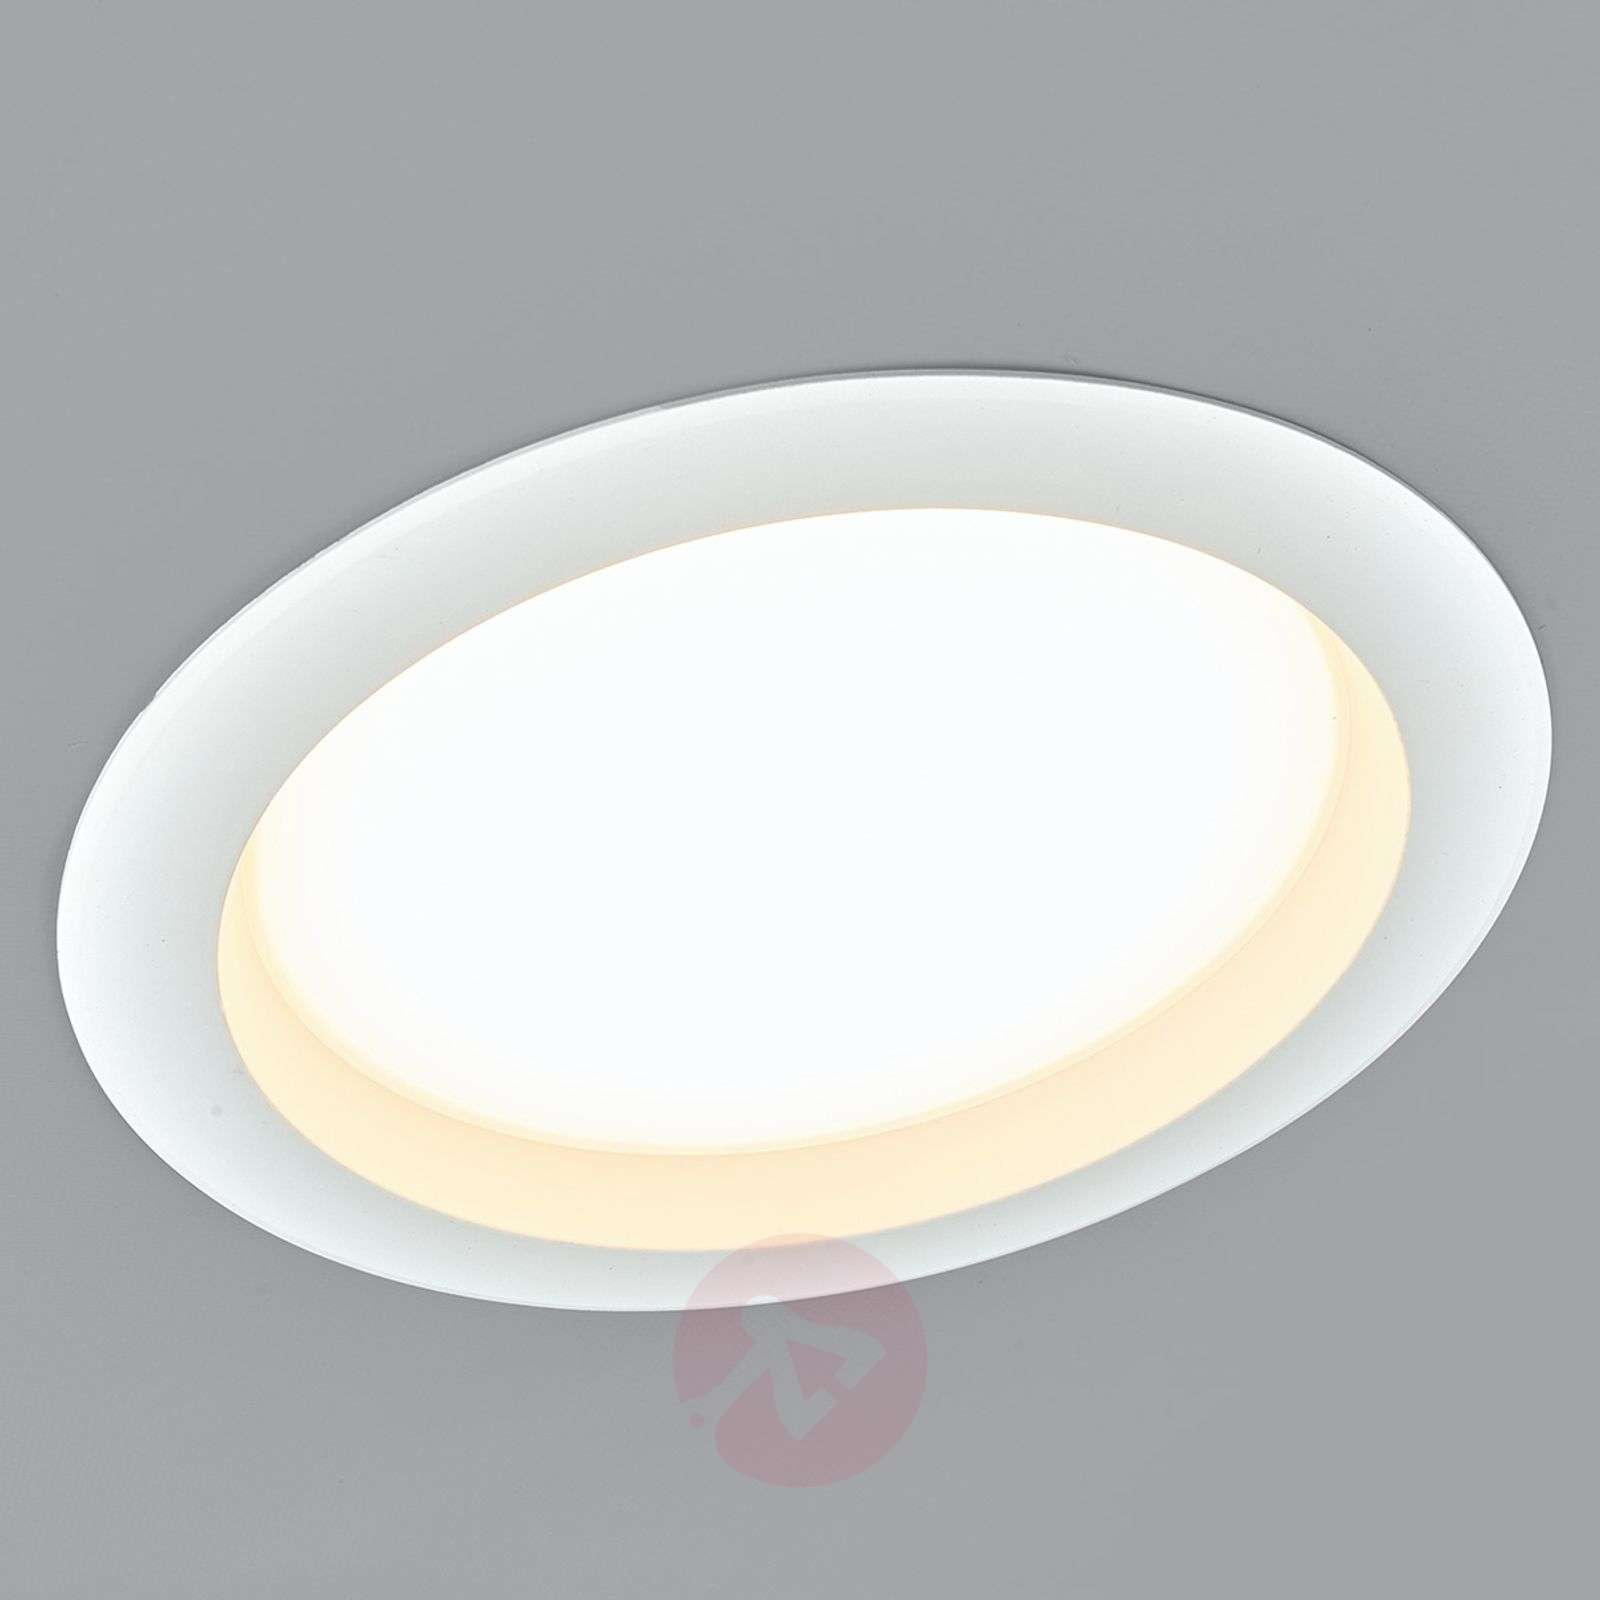 Large Led Recessed Spotlight Arian 24 4 Cm 22 5w Lights Ie